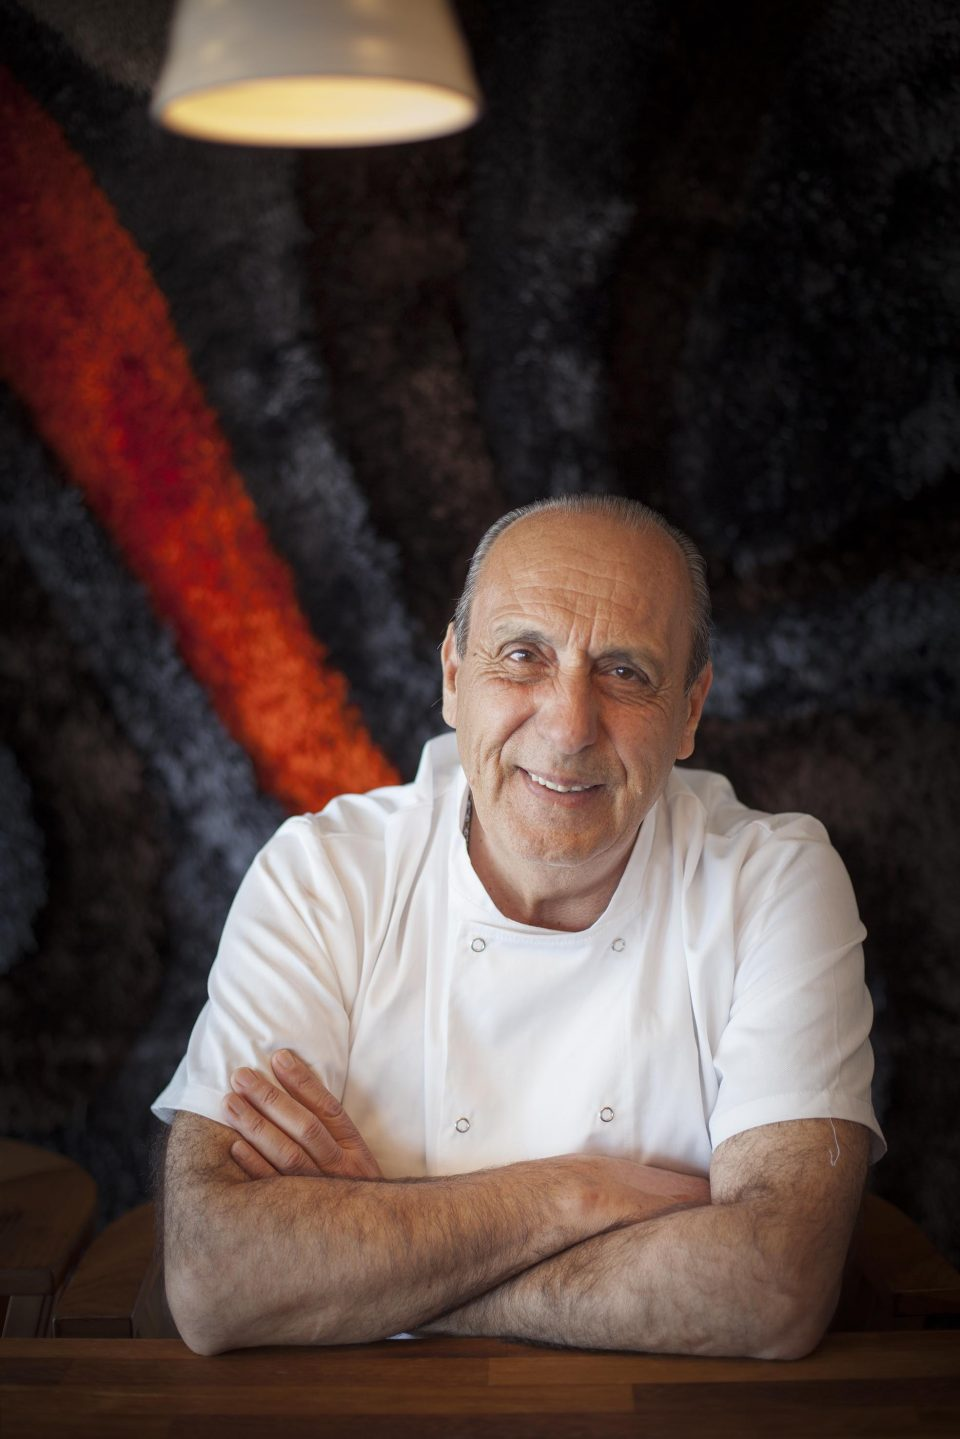 Gennaro Contaldo is a world-renowned chef, with his own premisis in Cornwall